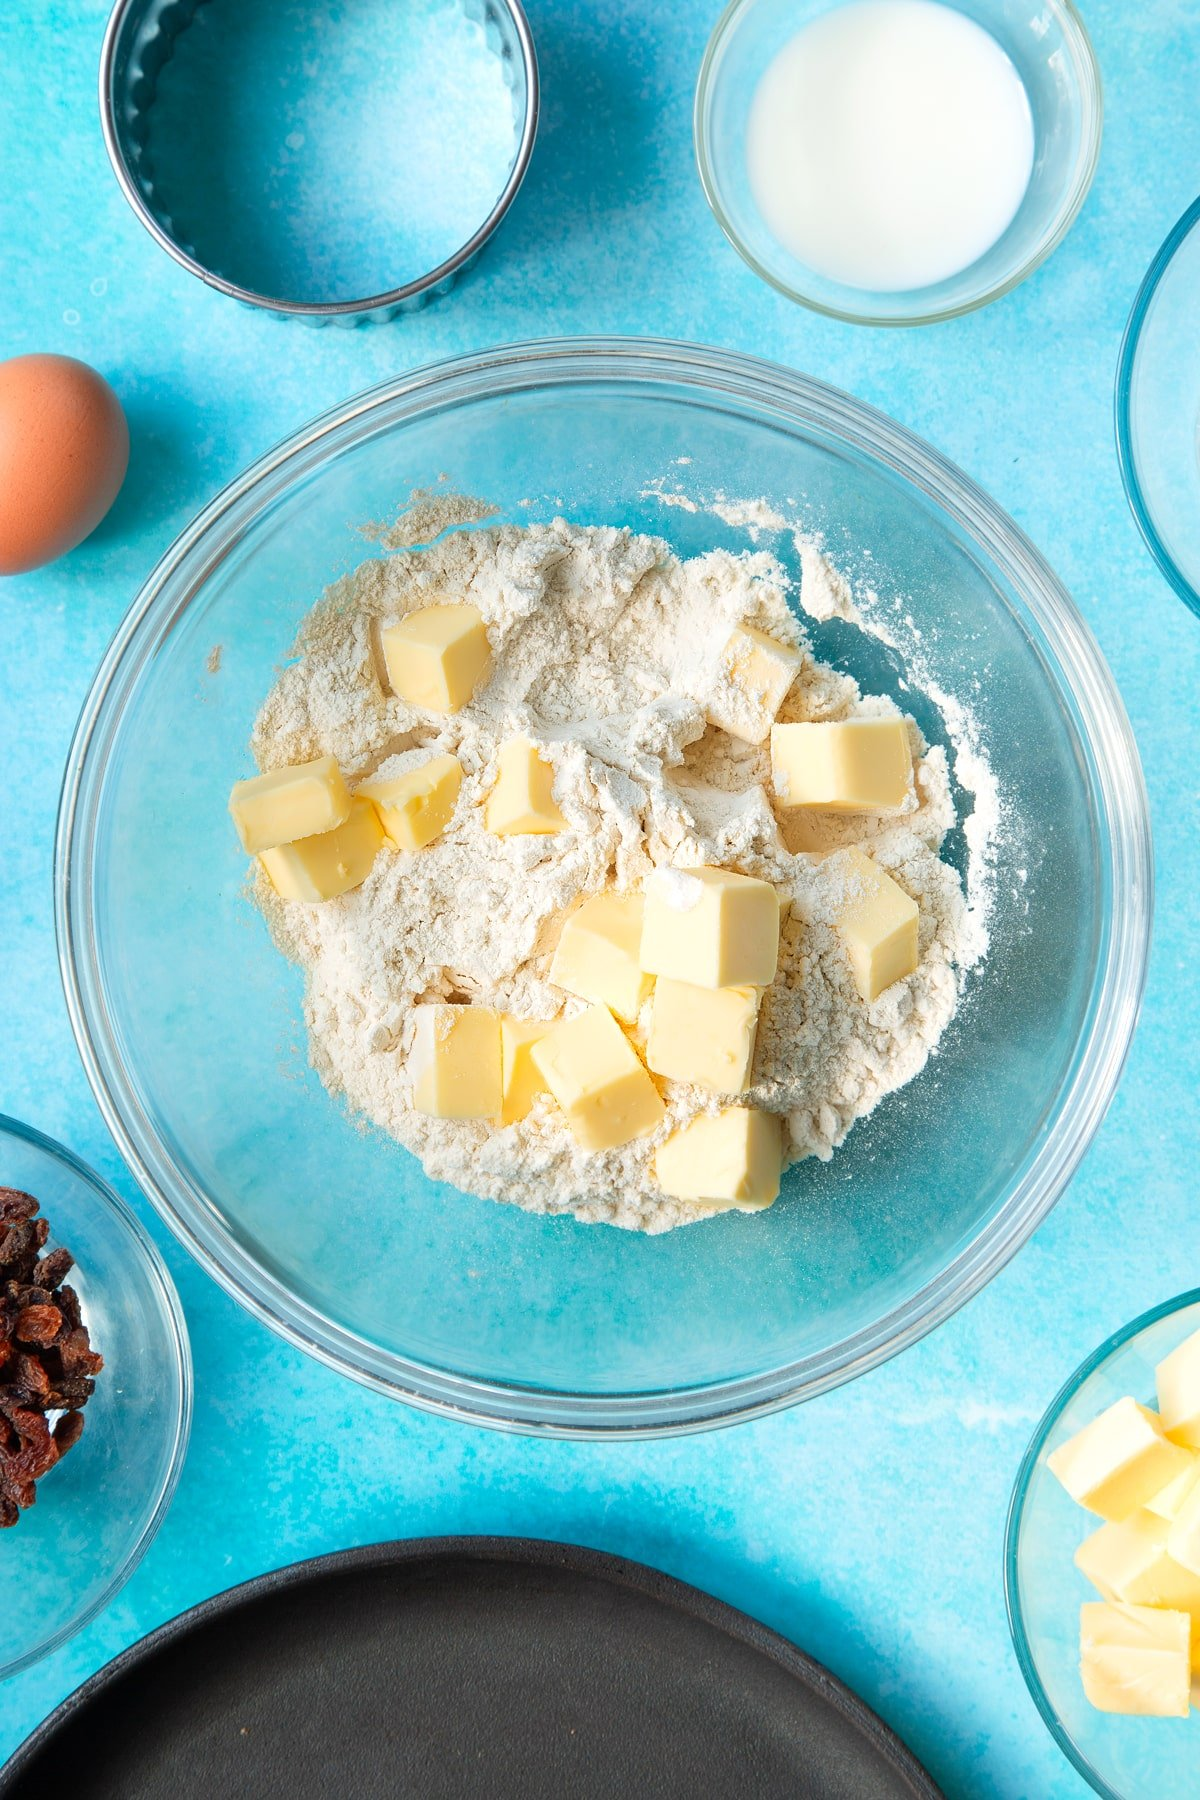 Flour and cubed butter in a bowl. Ingredients and equipment to make Welsh cakes surround the bowl.